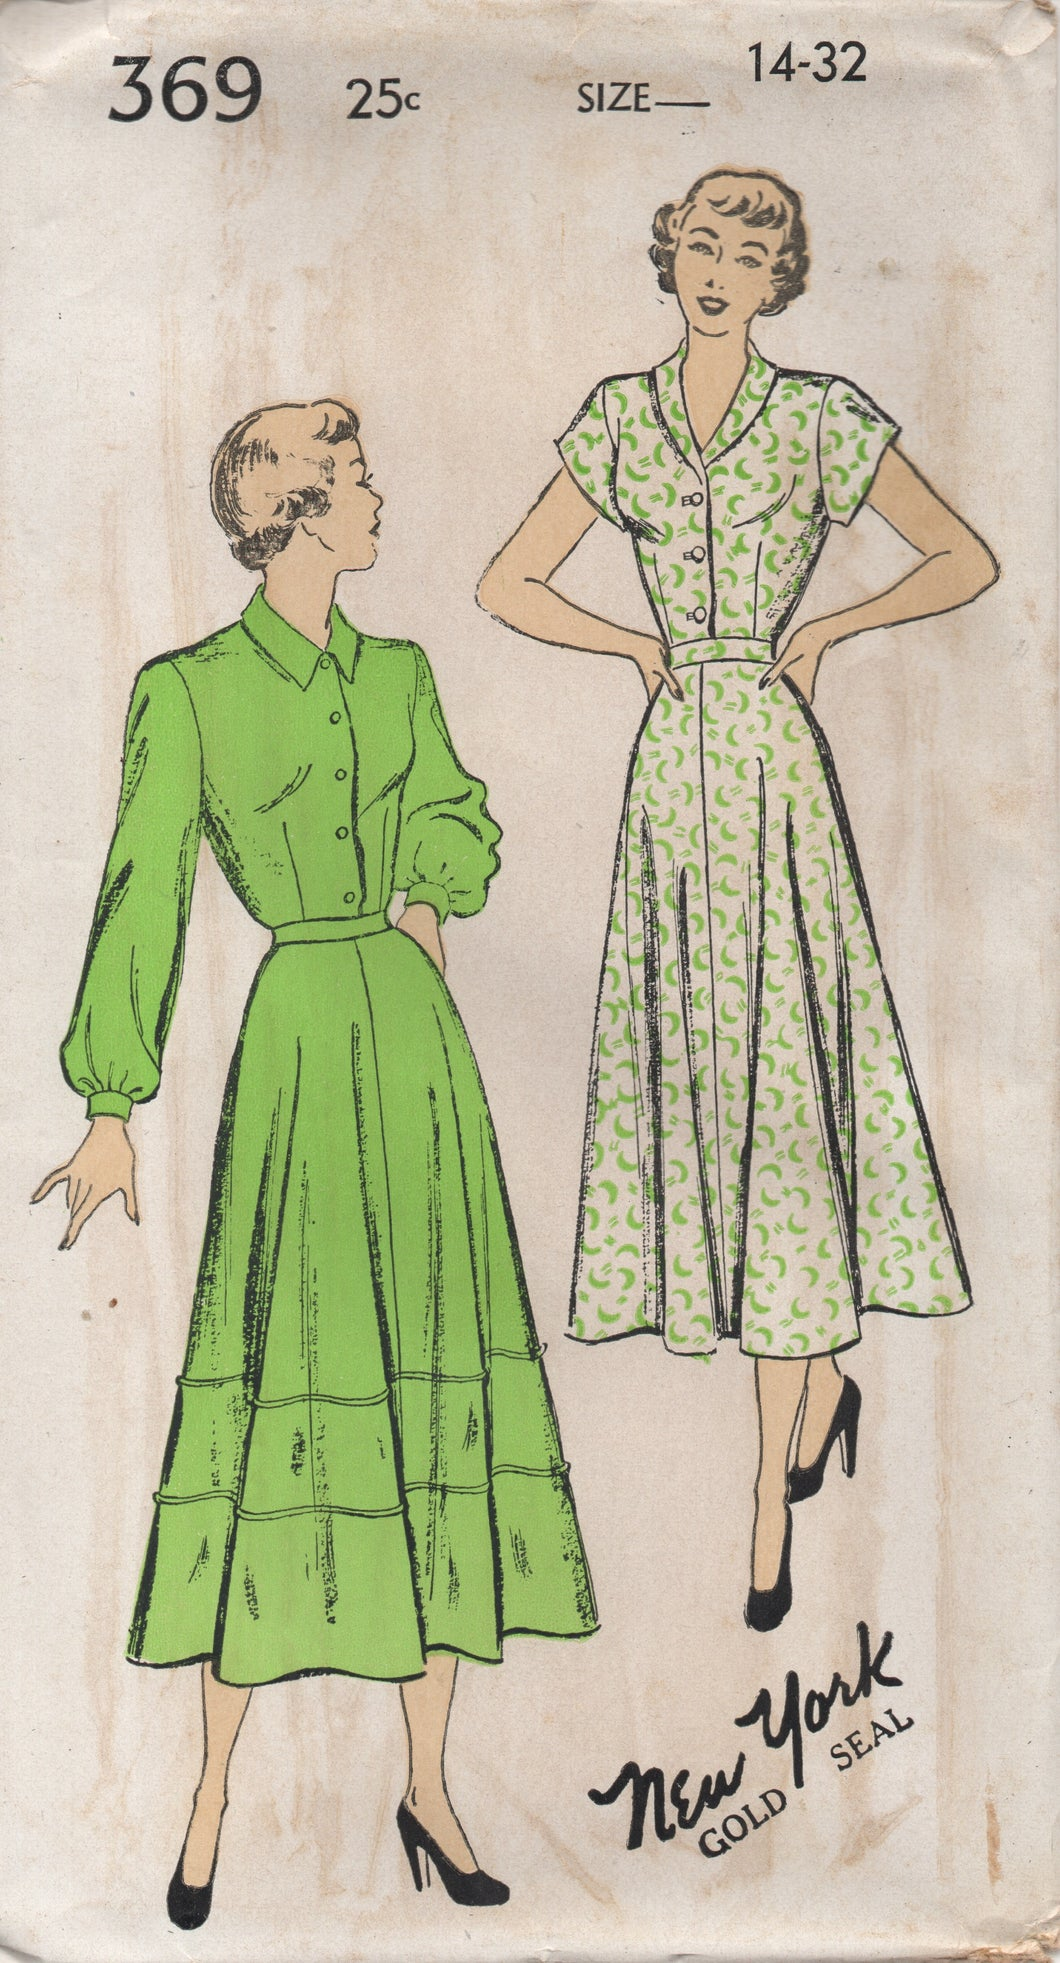 1940's New York Shirtwaist Dress with Two Sleeve lengths and Trimmed Skirt - Bust 32